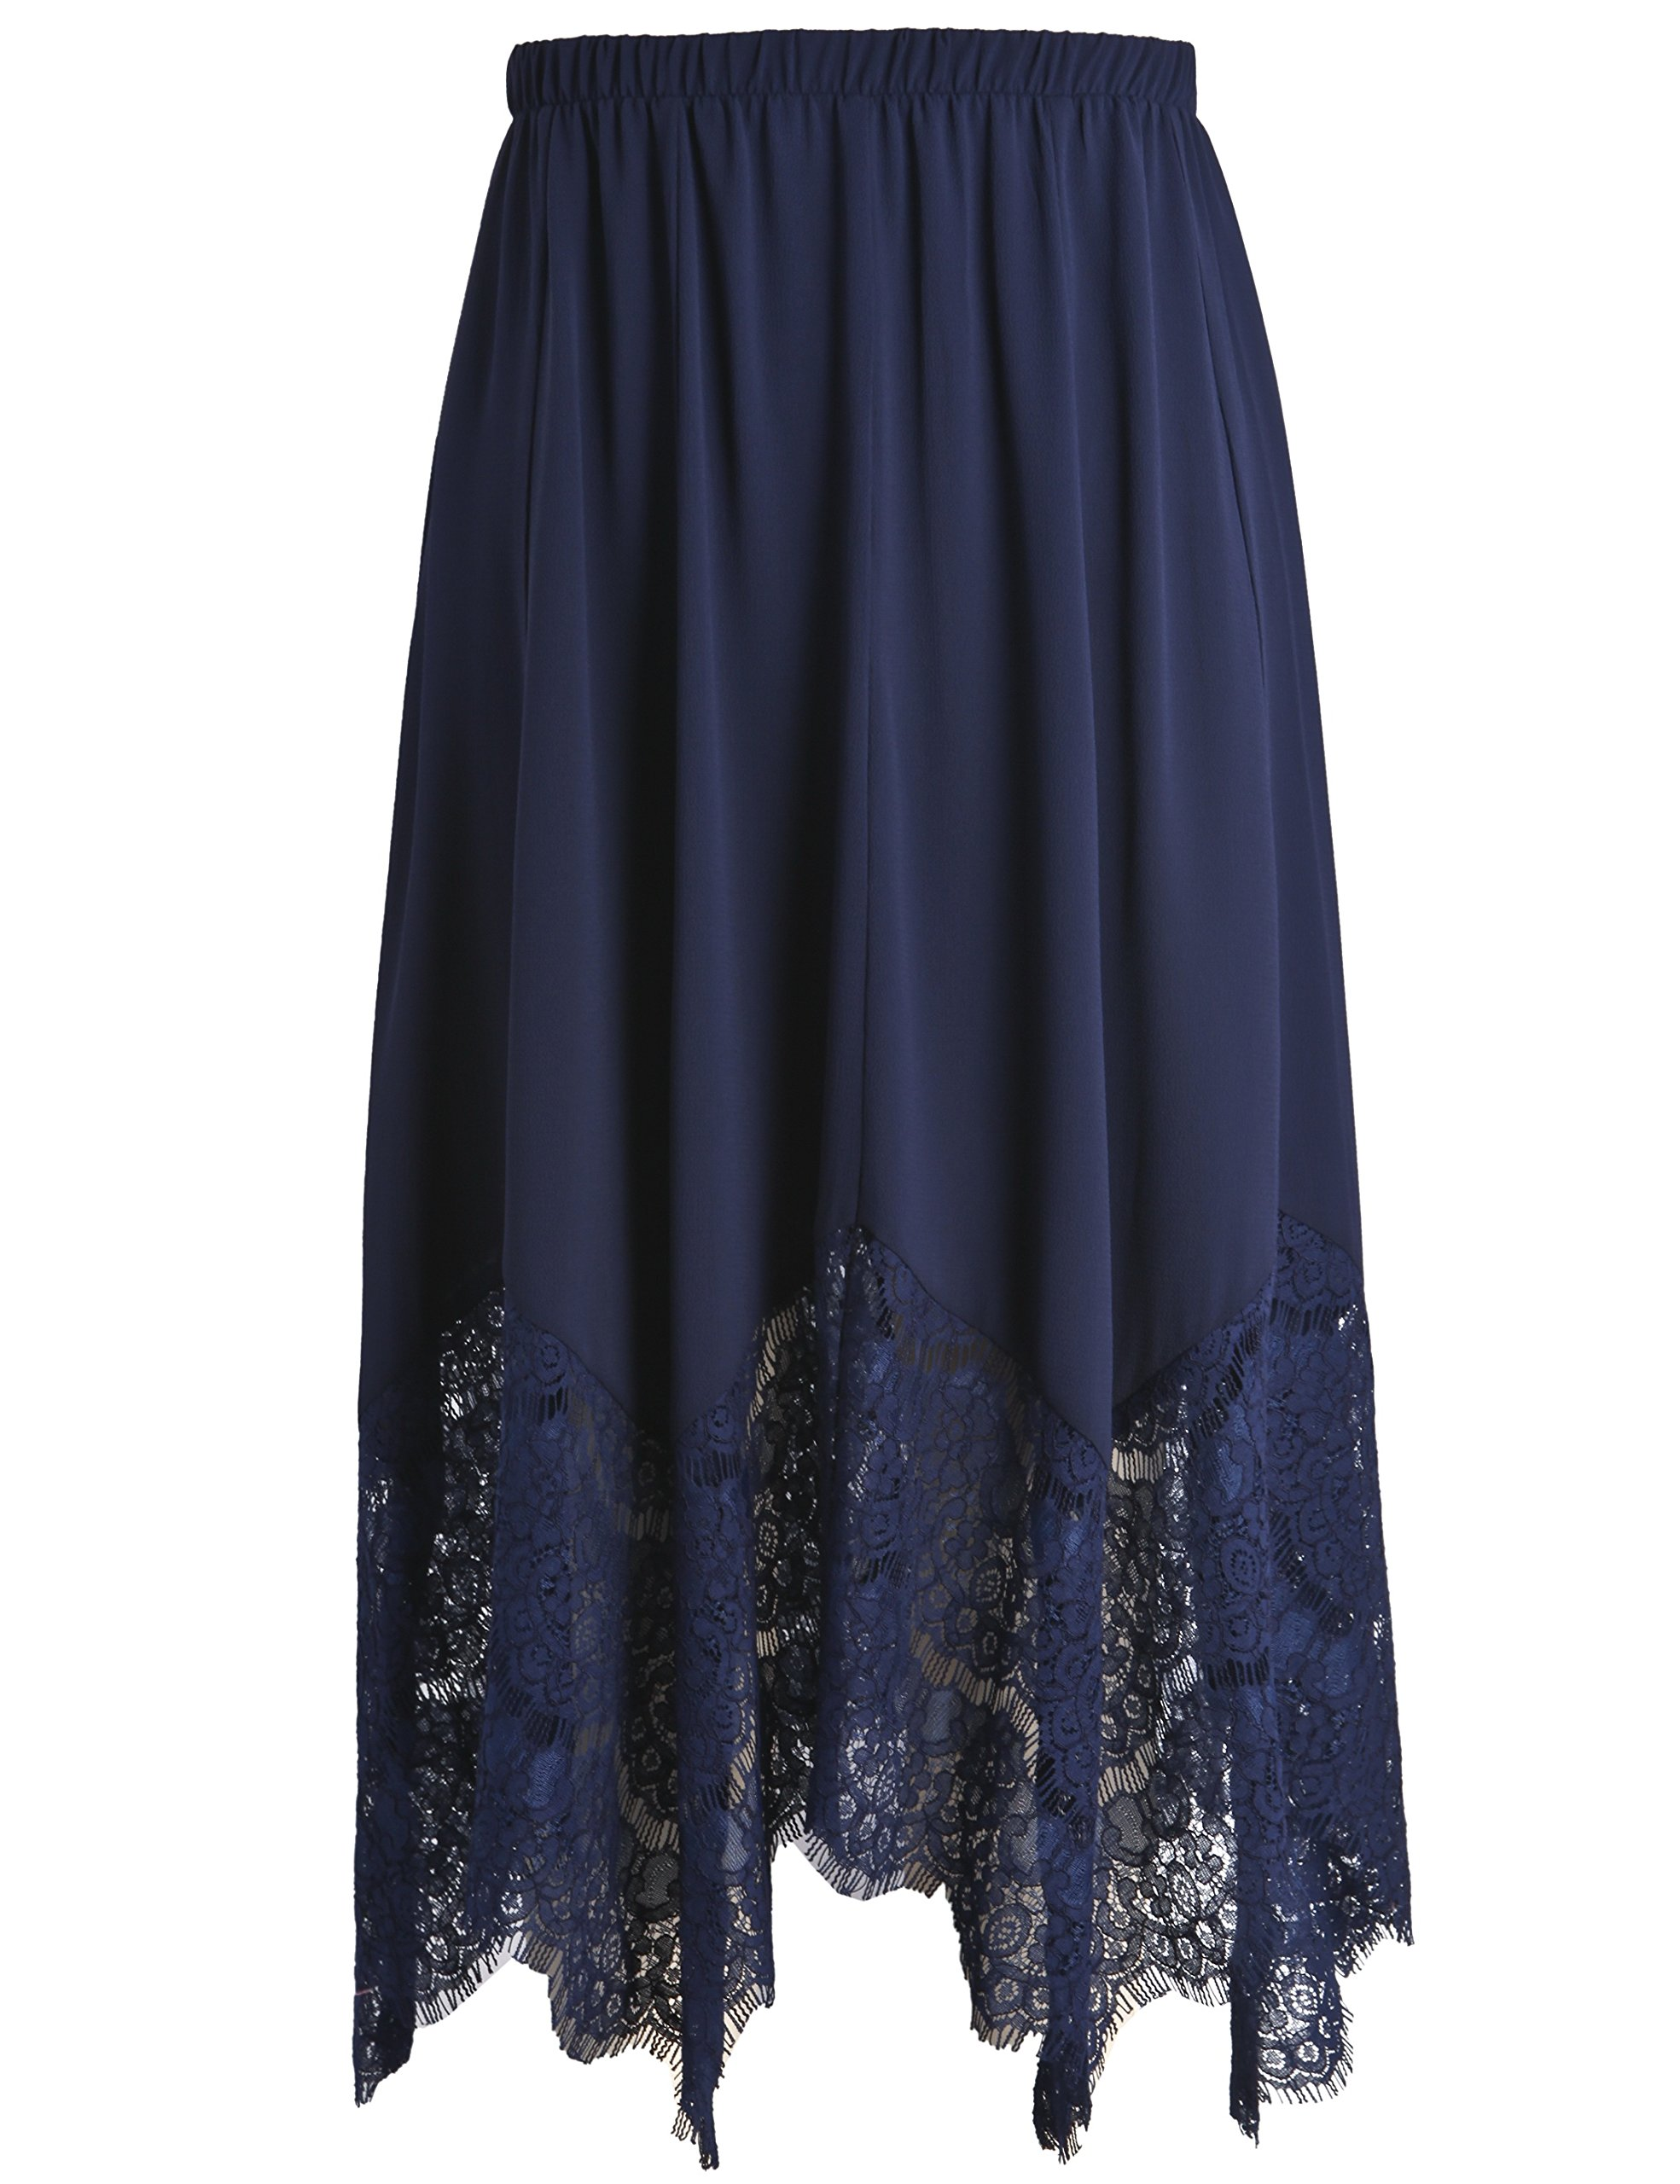 Chicwe Women's Plus Size Long Flare Lace Trimmed Skirt with Elastic Waistband - Casual and Work Skirt Navy 2X